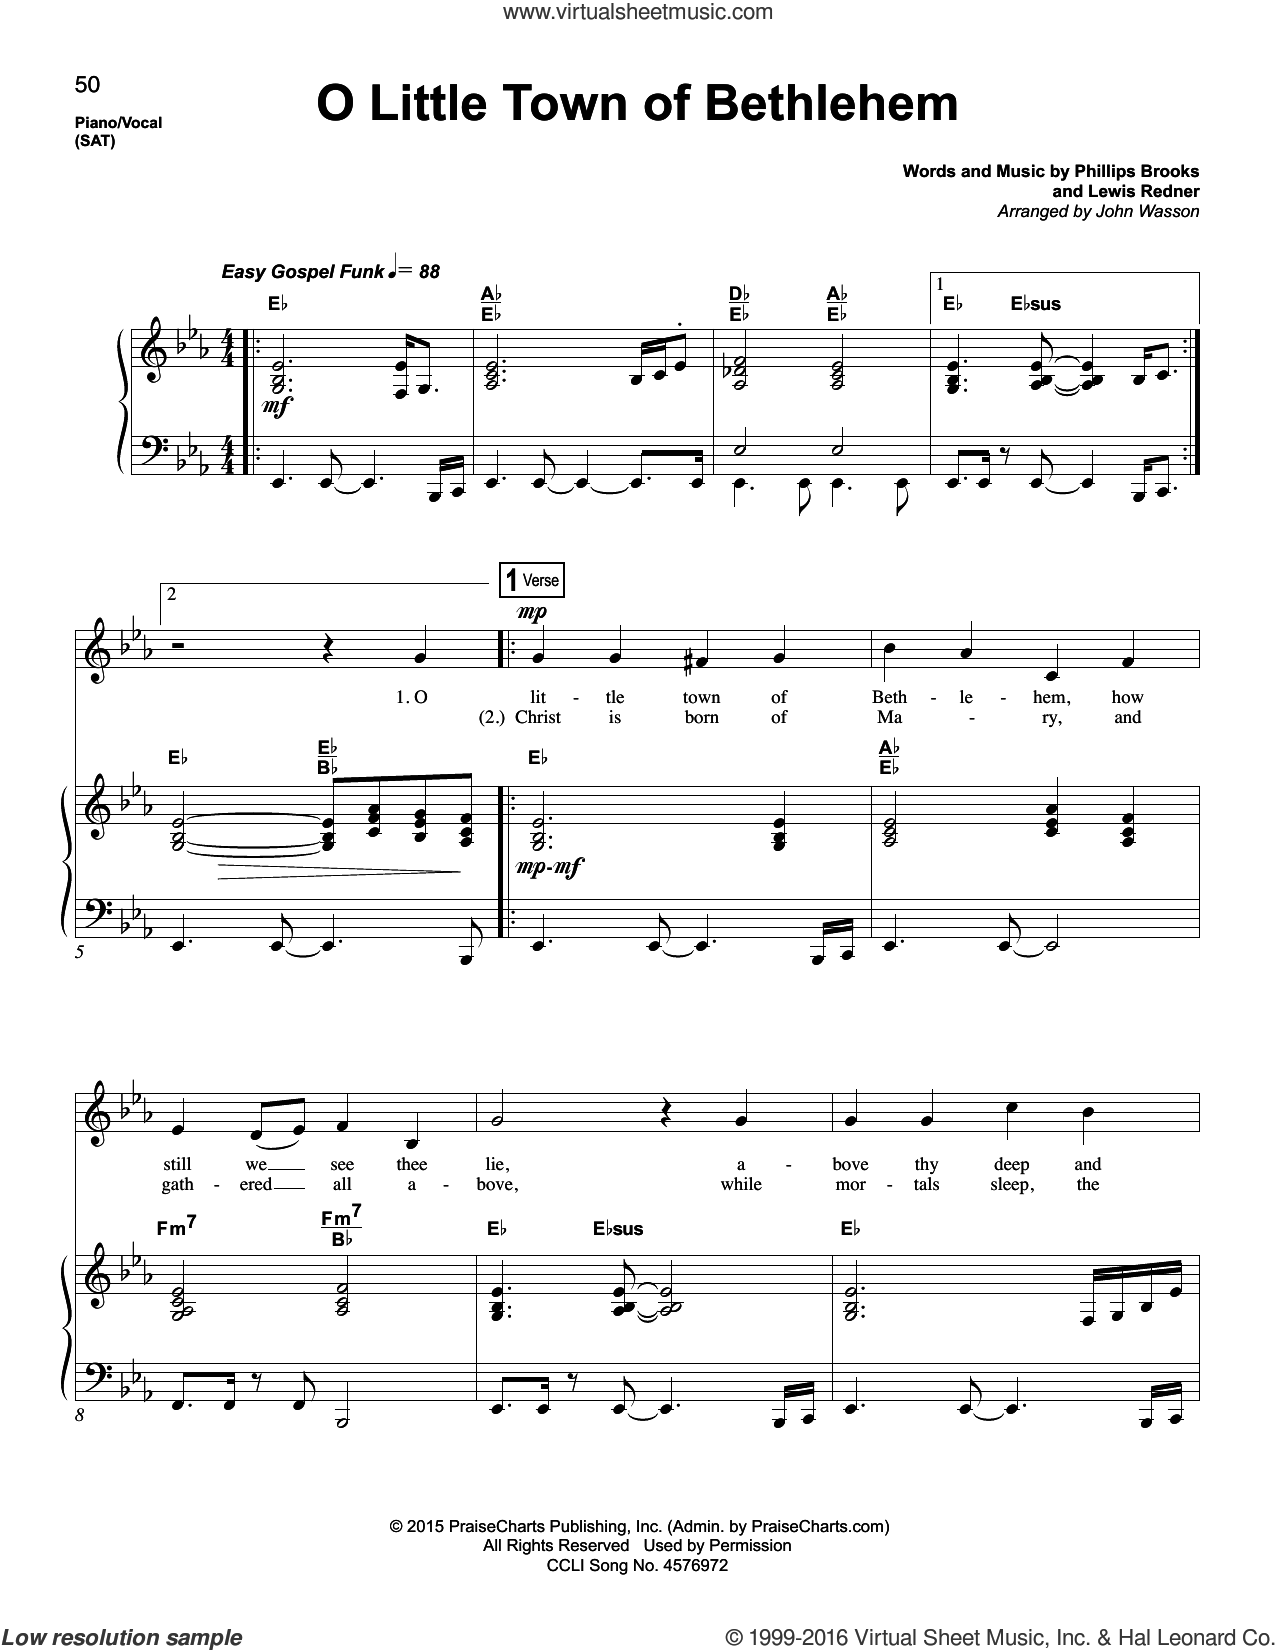 O Little Town Of Bethlehem sheet music for voice and piano by Lewis Redner, John Wasson and Phillips Brooks. Score Image Preview.